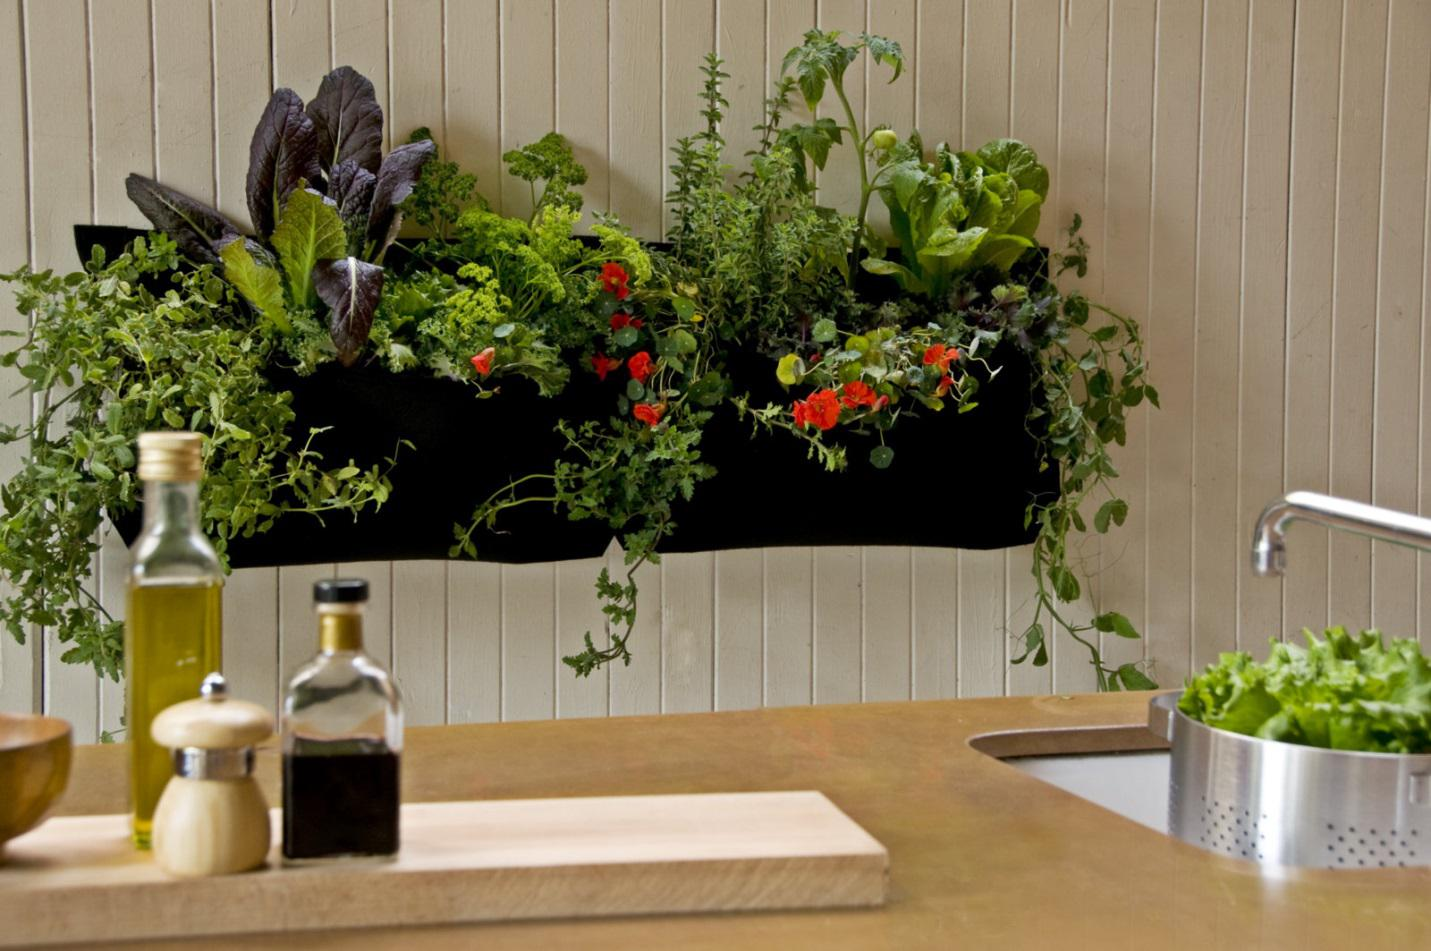 Kitchen plants decor